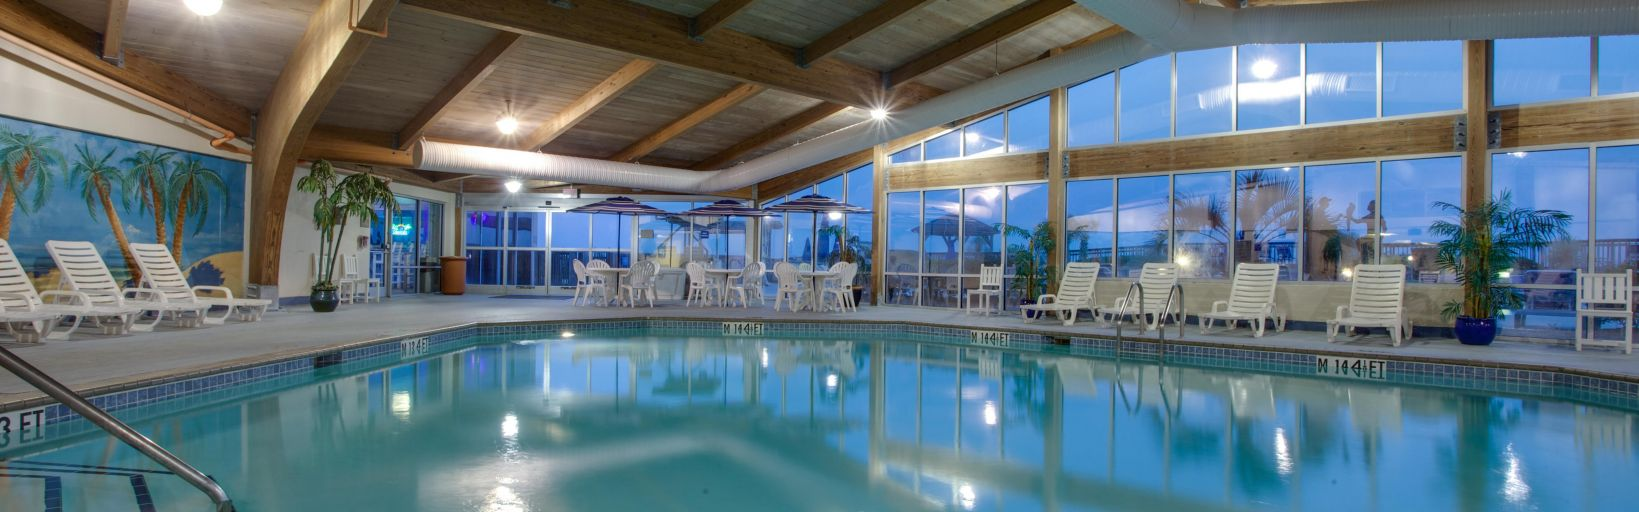 Wrightsville Beach Hotels Indoor Pool